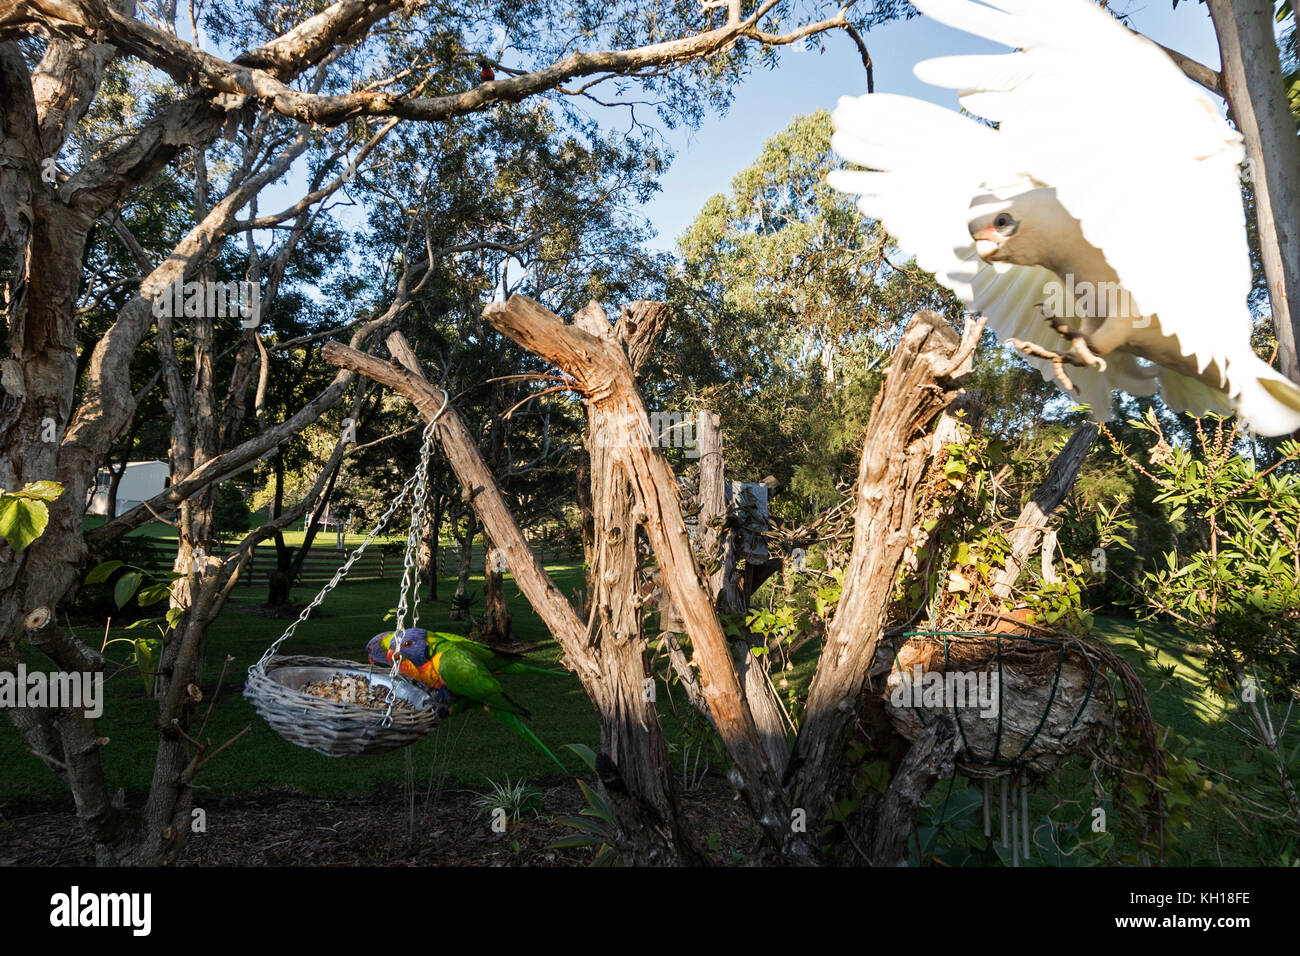 A Rainbow Lorikeet feeding whilst a Little Corella just landed on a tree stump in a residential garden on the Sunshine - Stock Image